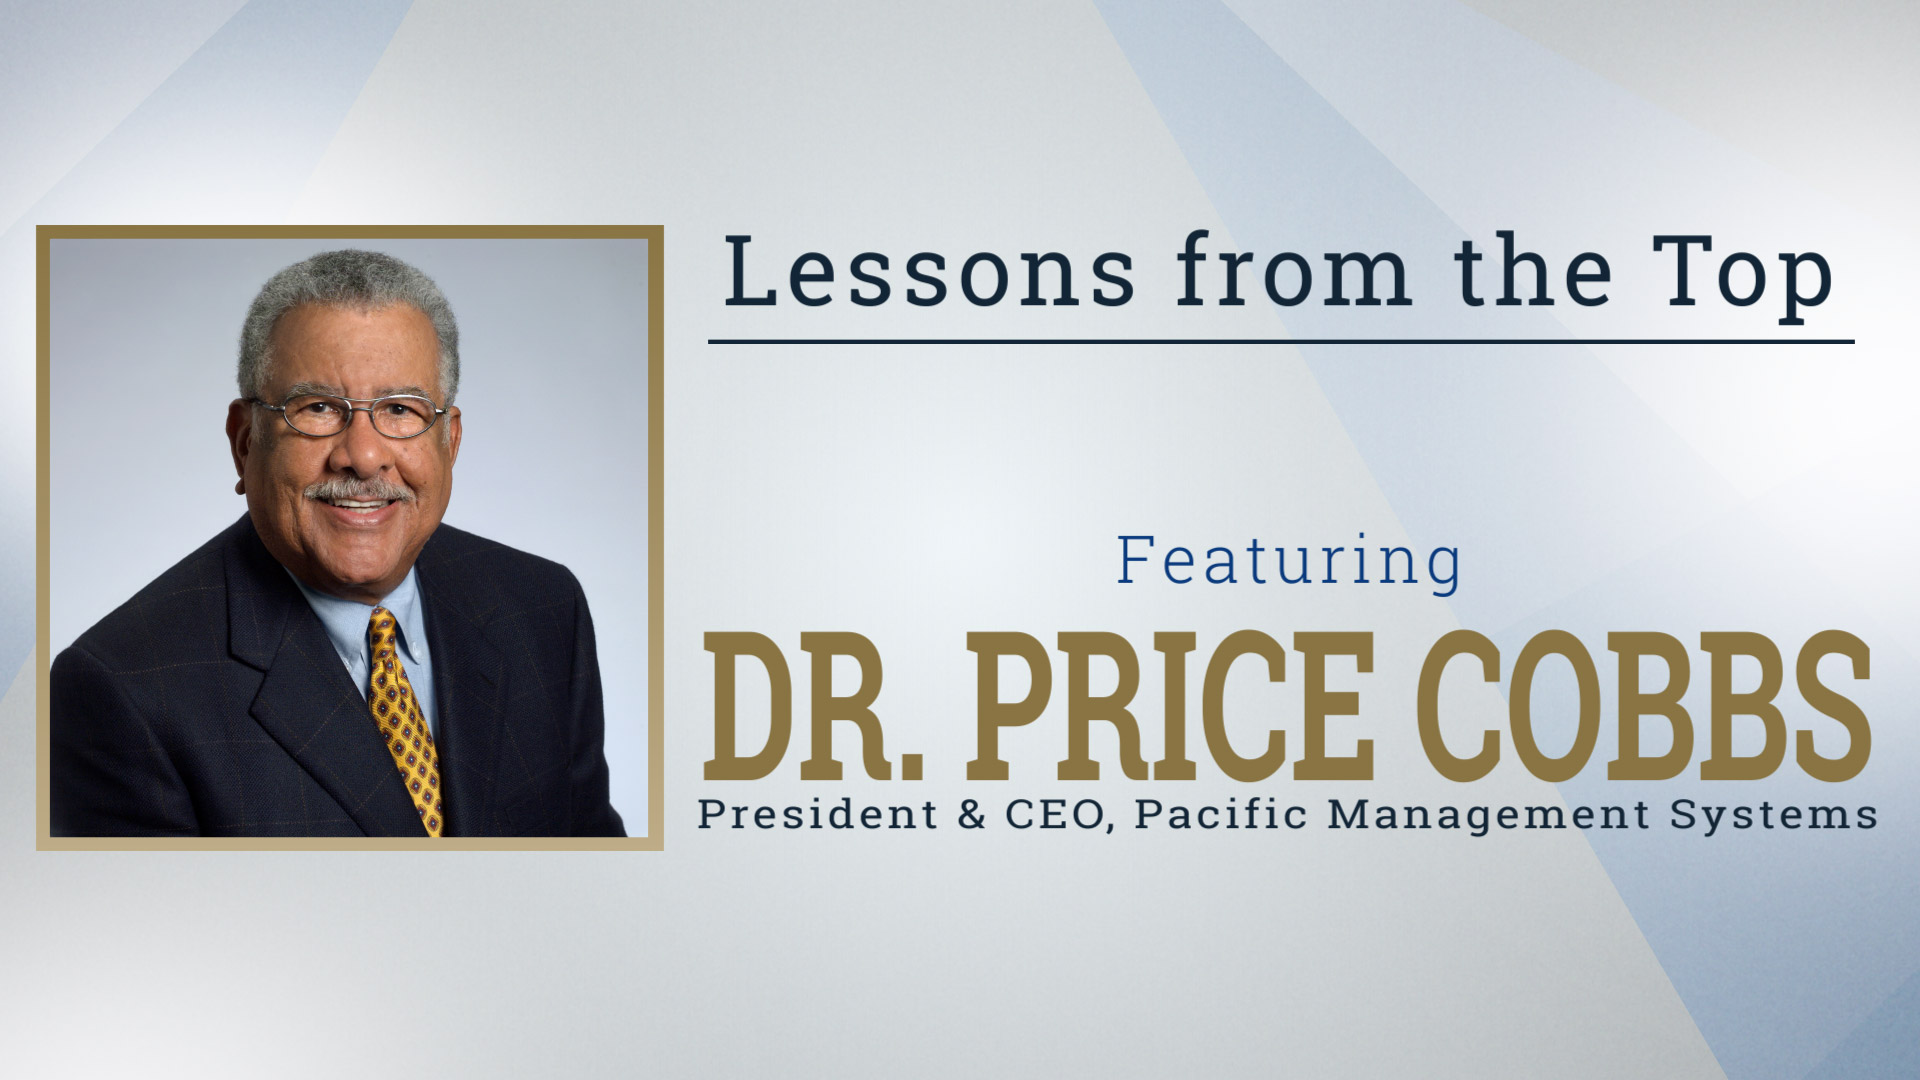 Lessons from the Top Featuring Dr. Price Cobbs